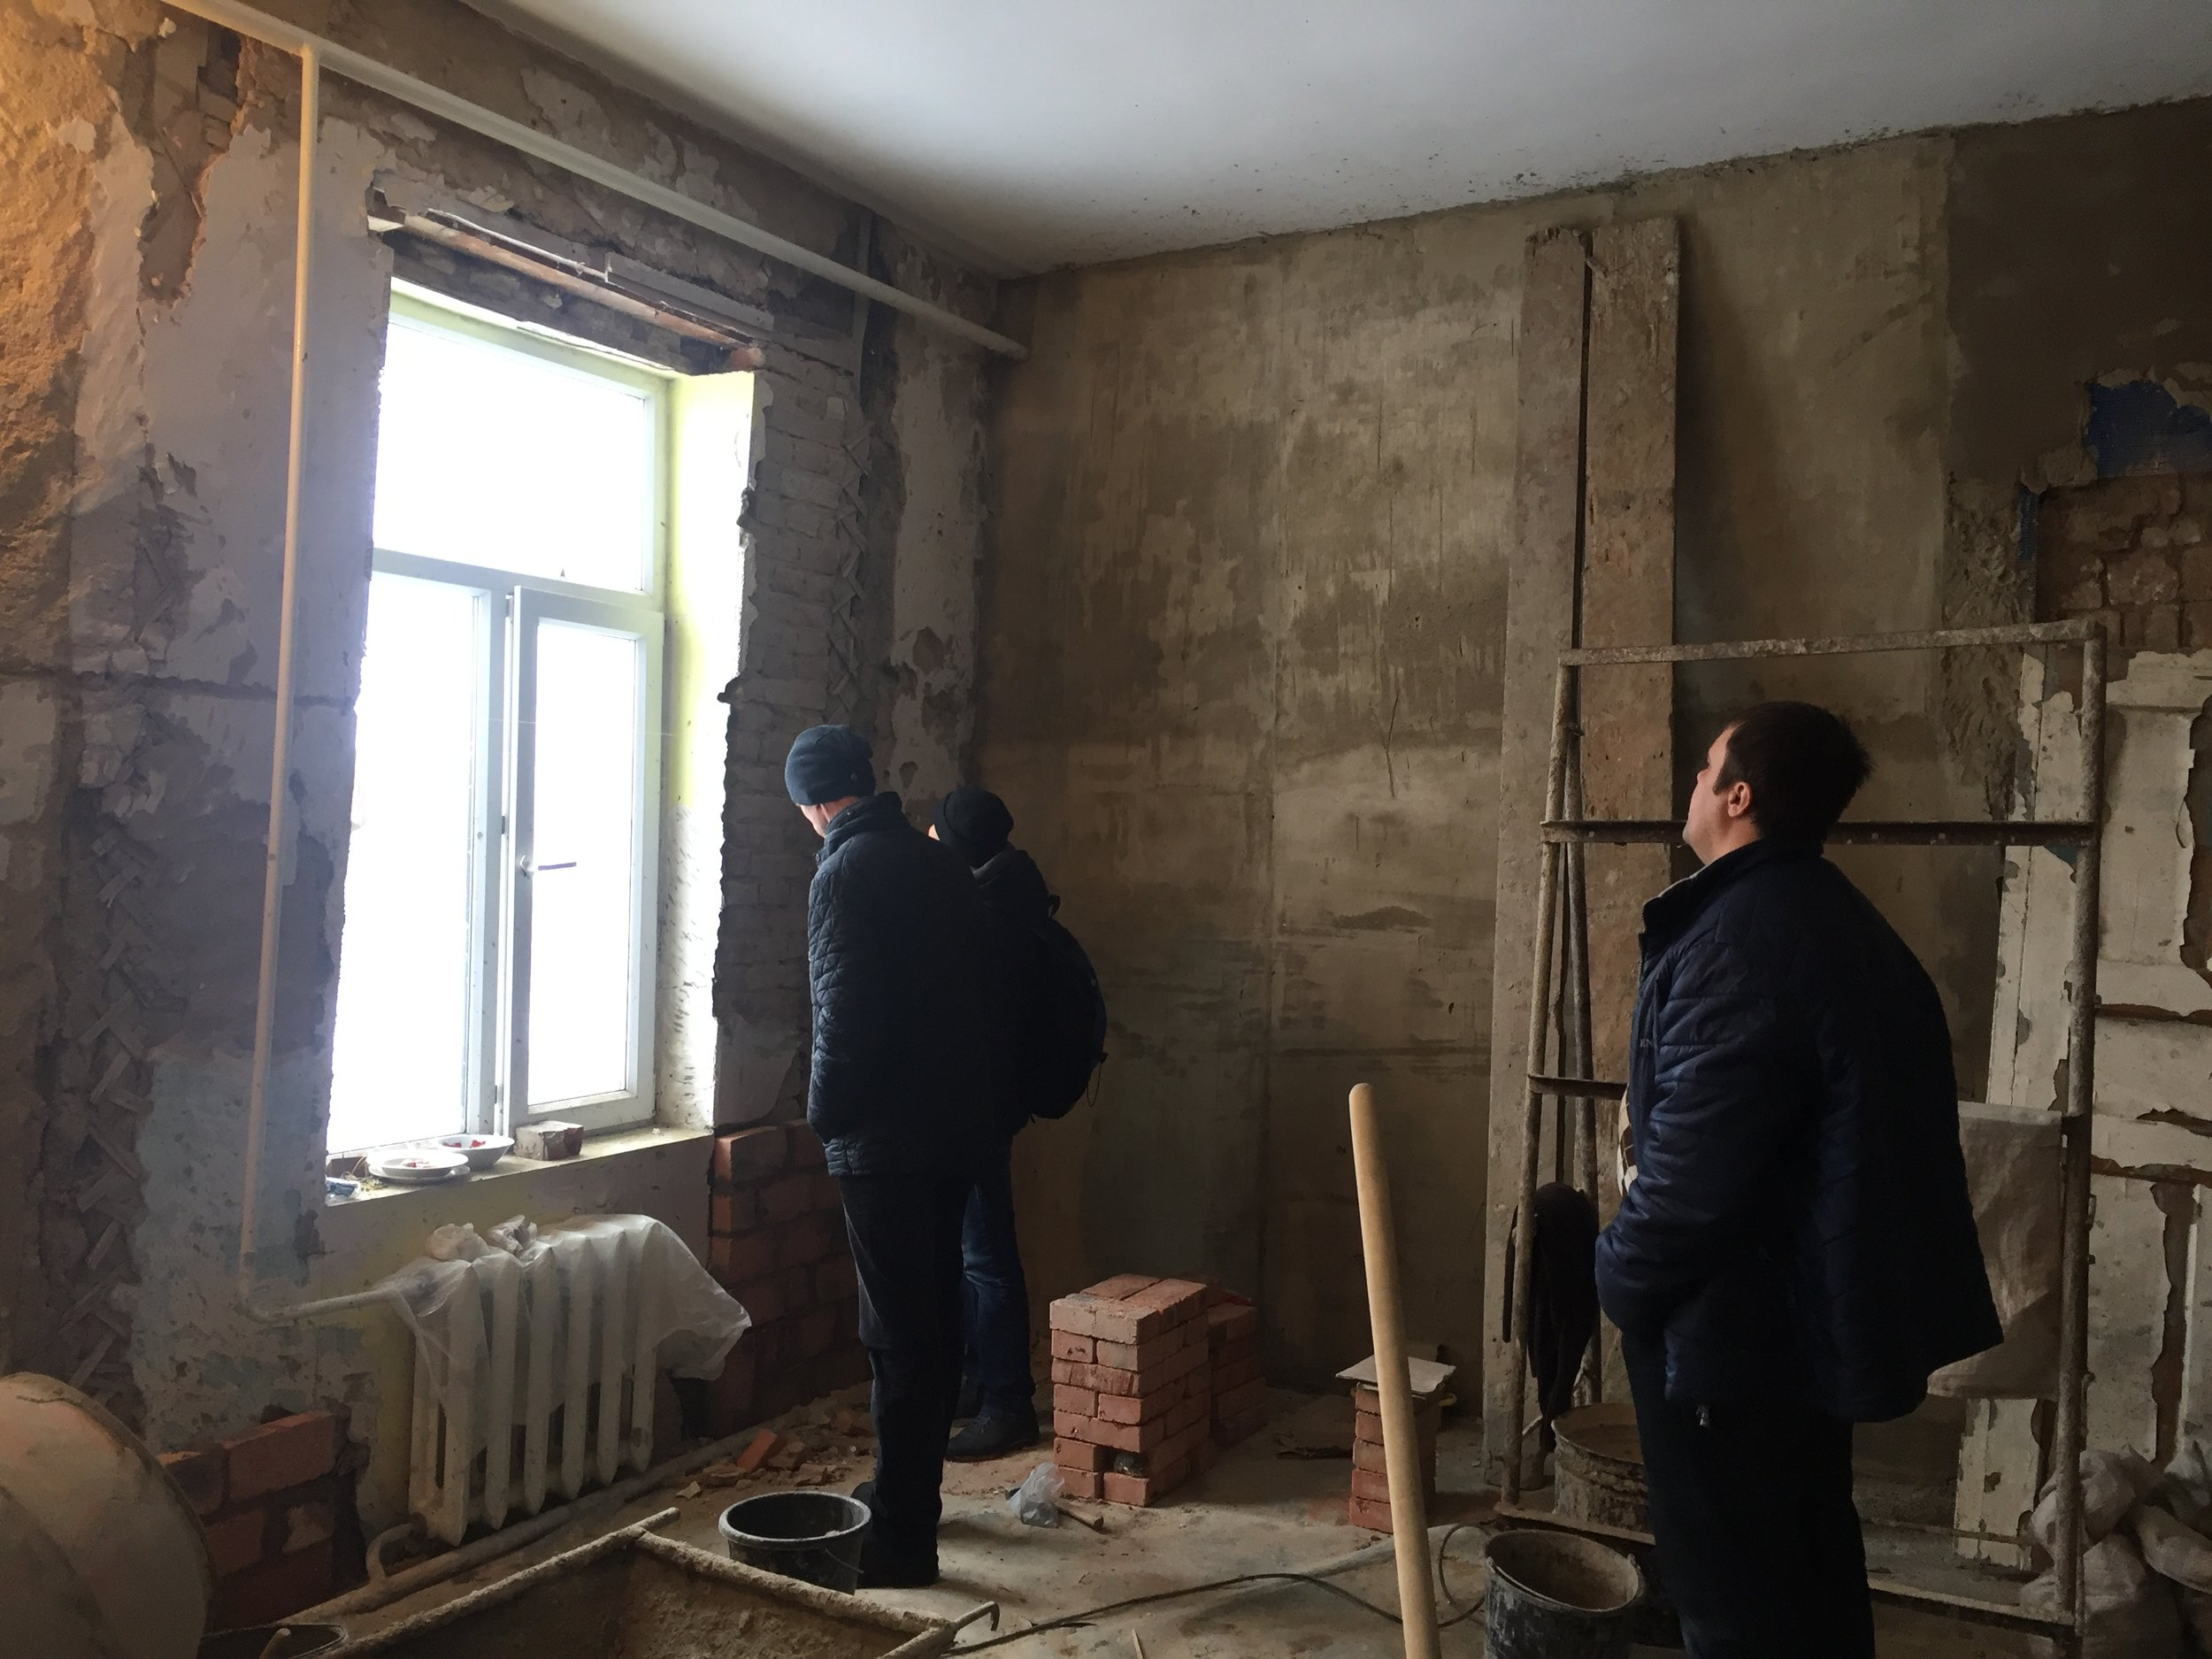 Gert's team working on renovating a third room for the building one inhabitants. Currently, they only have two rooms where they can stay.